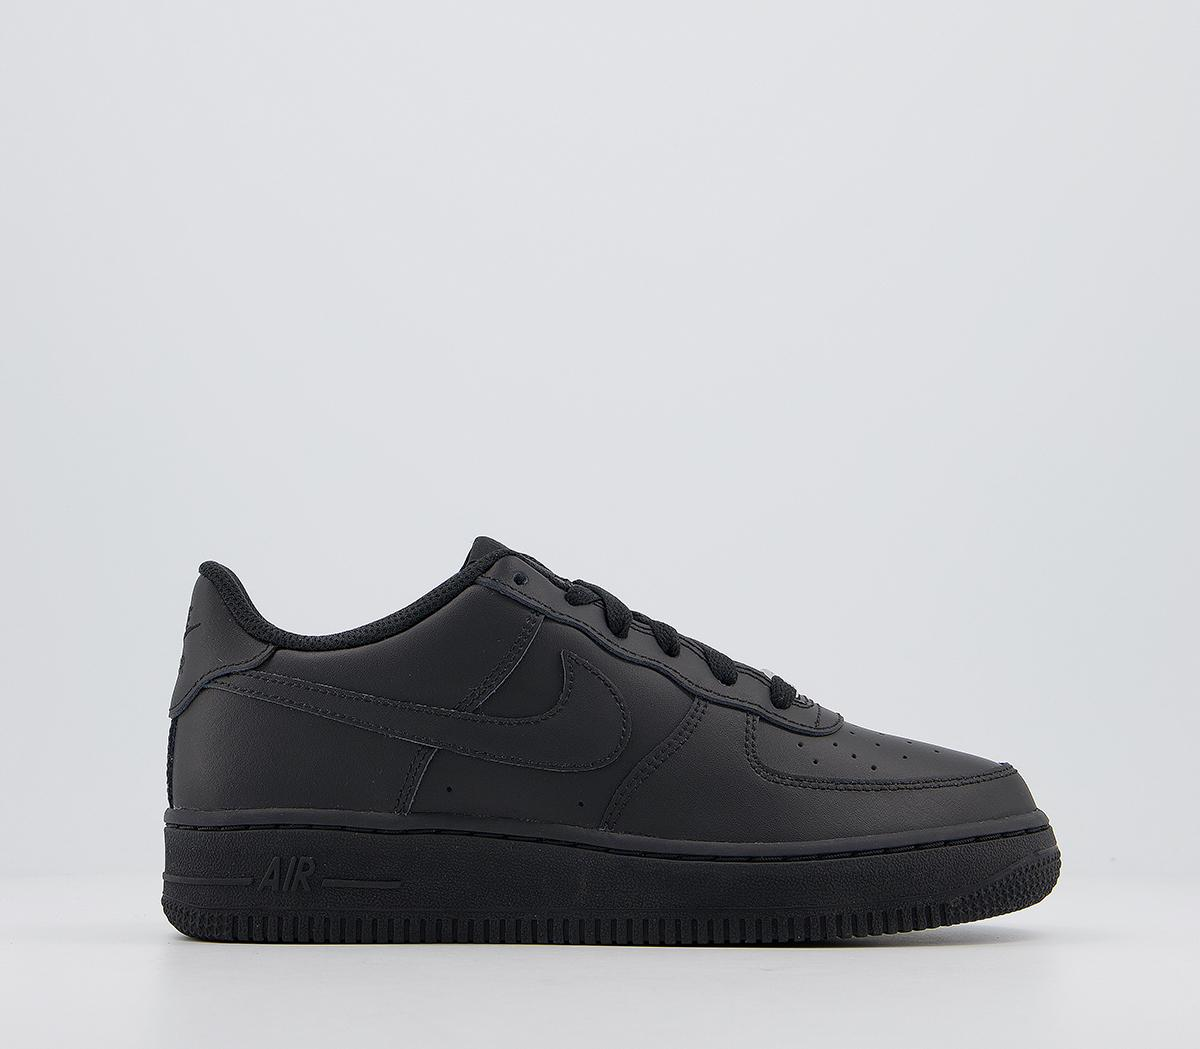 Nike Air Force 1 Trainers Blkblk - Kids